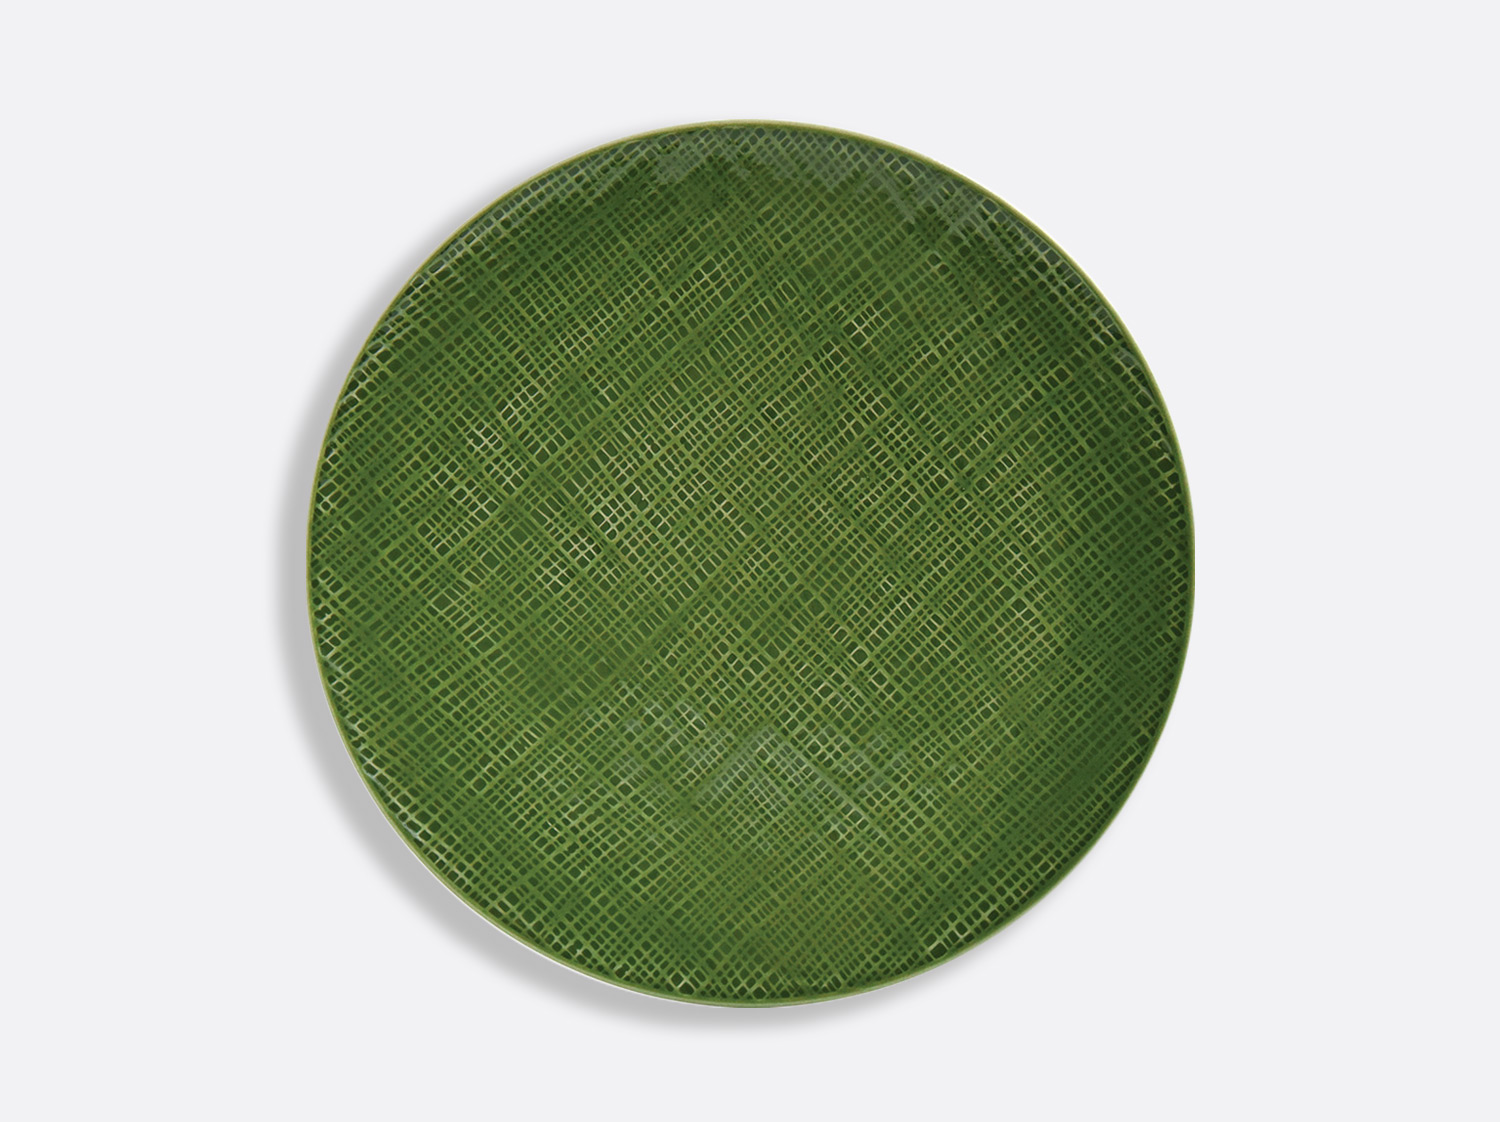 China Vert Chartreux coupe plate 26 cm of the collection ORGANZA VERT CHARTREUX | Bernardaud